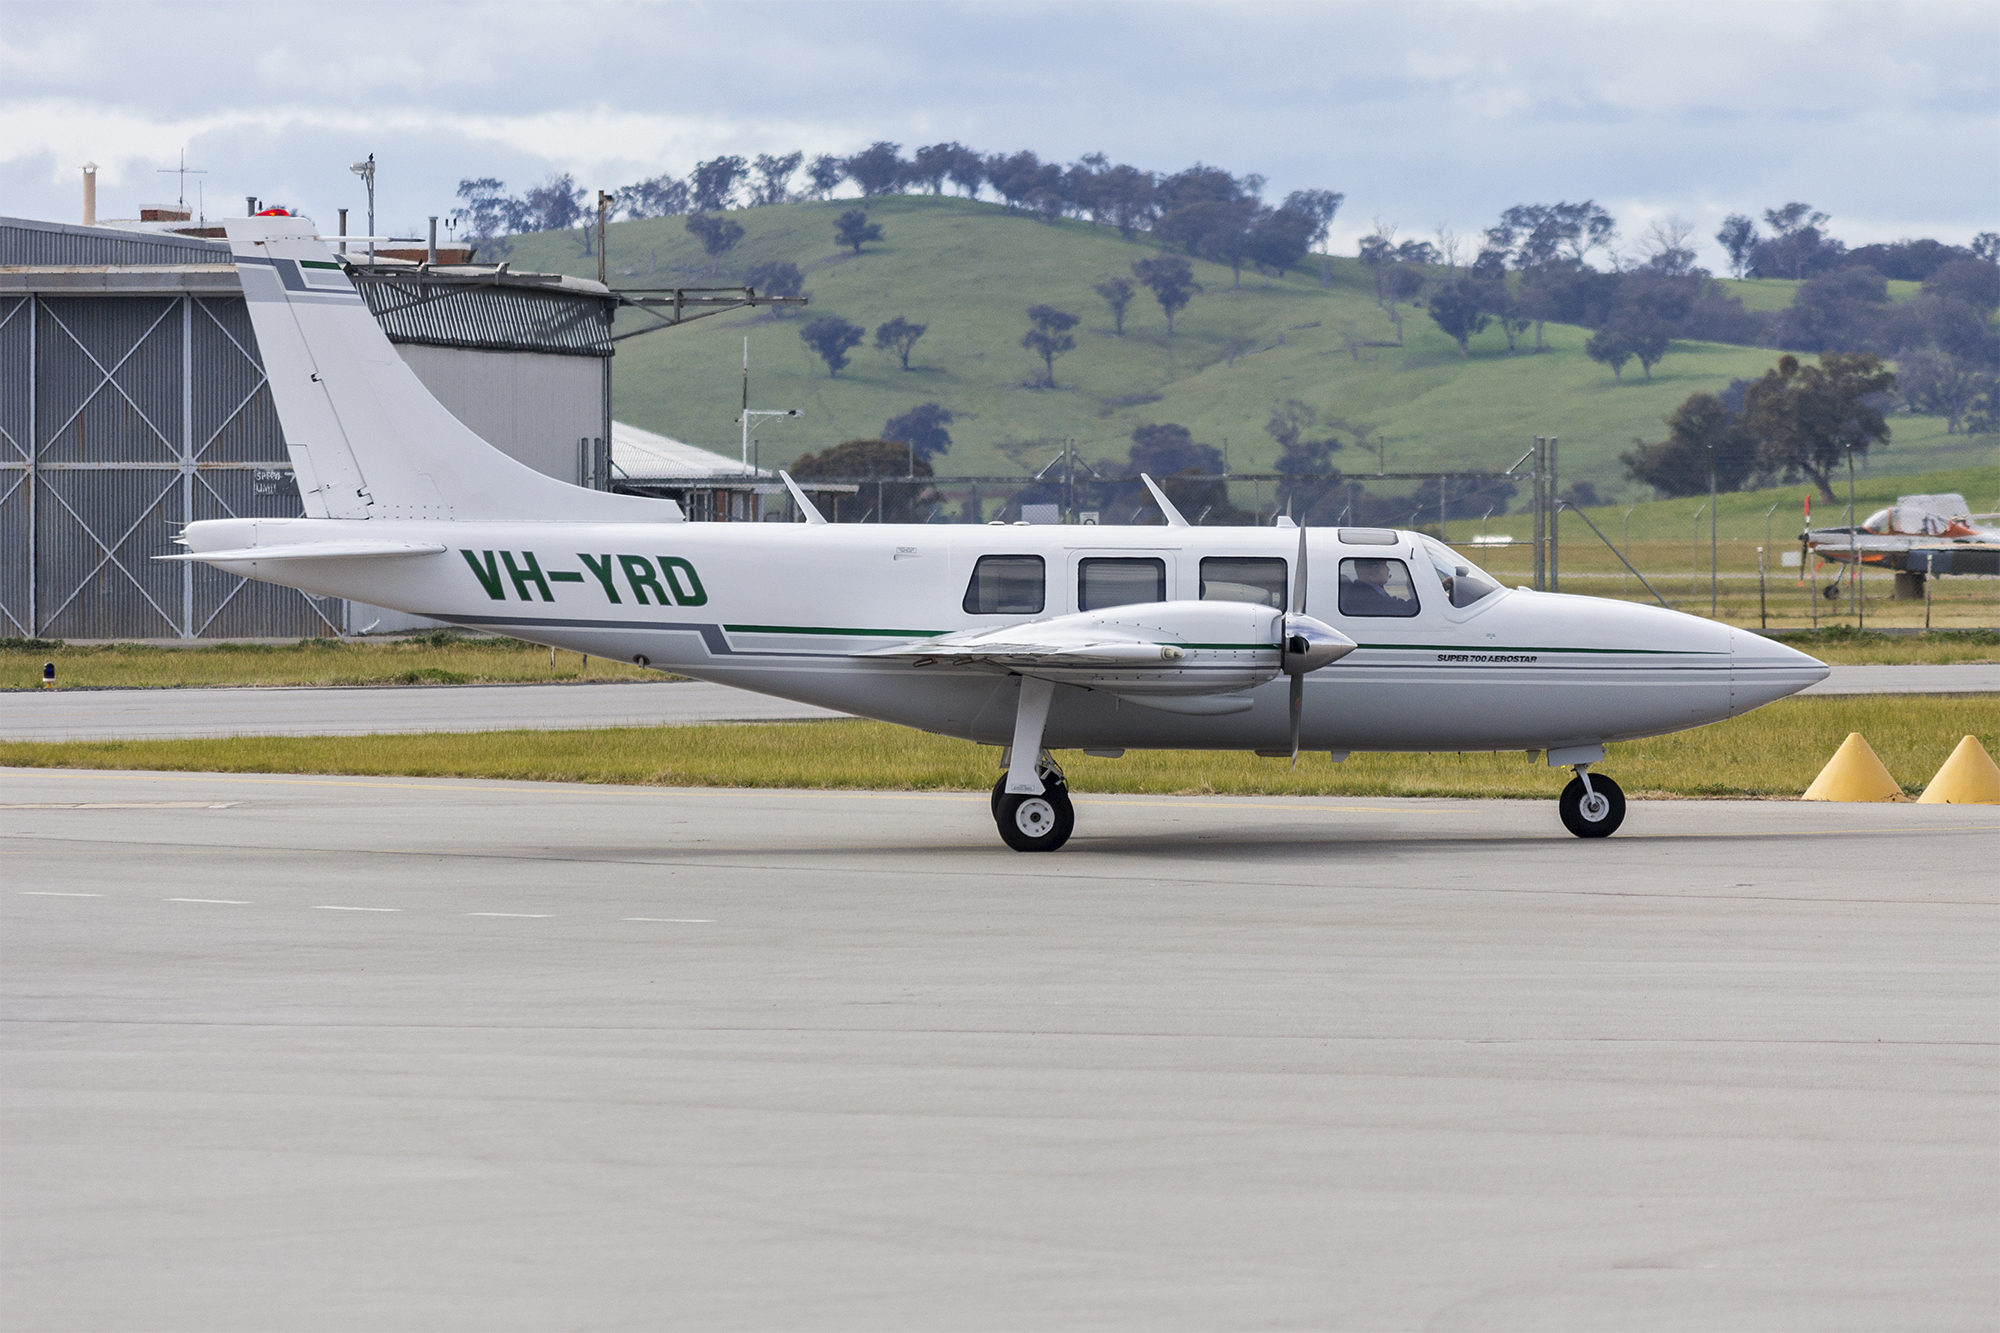 File:C&M Wholesalers (VH-YRD) Ted Smith Aerostar 601P taxiing at Wagga